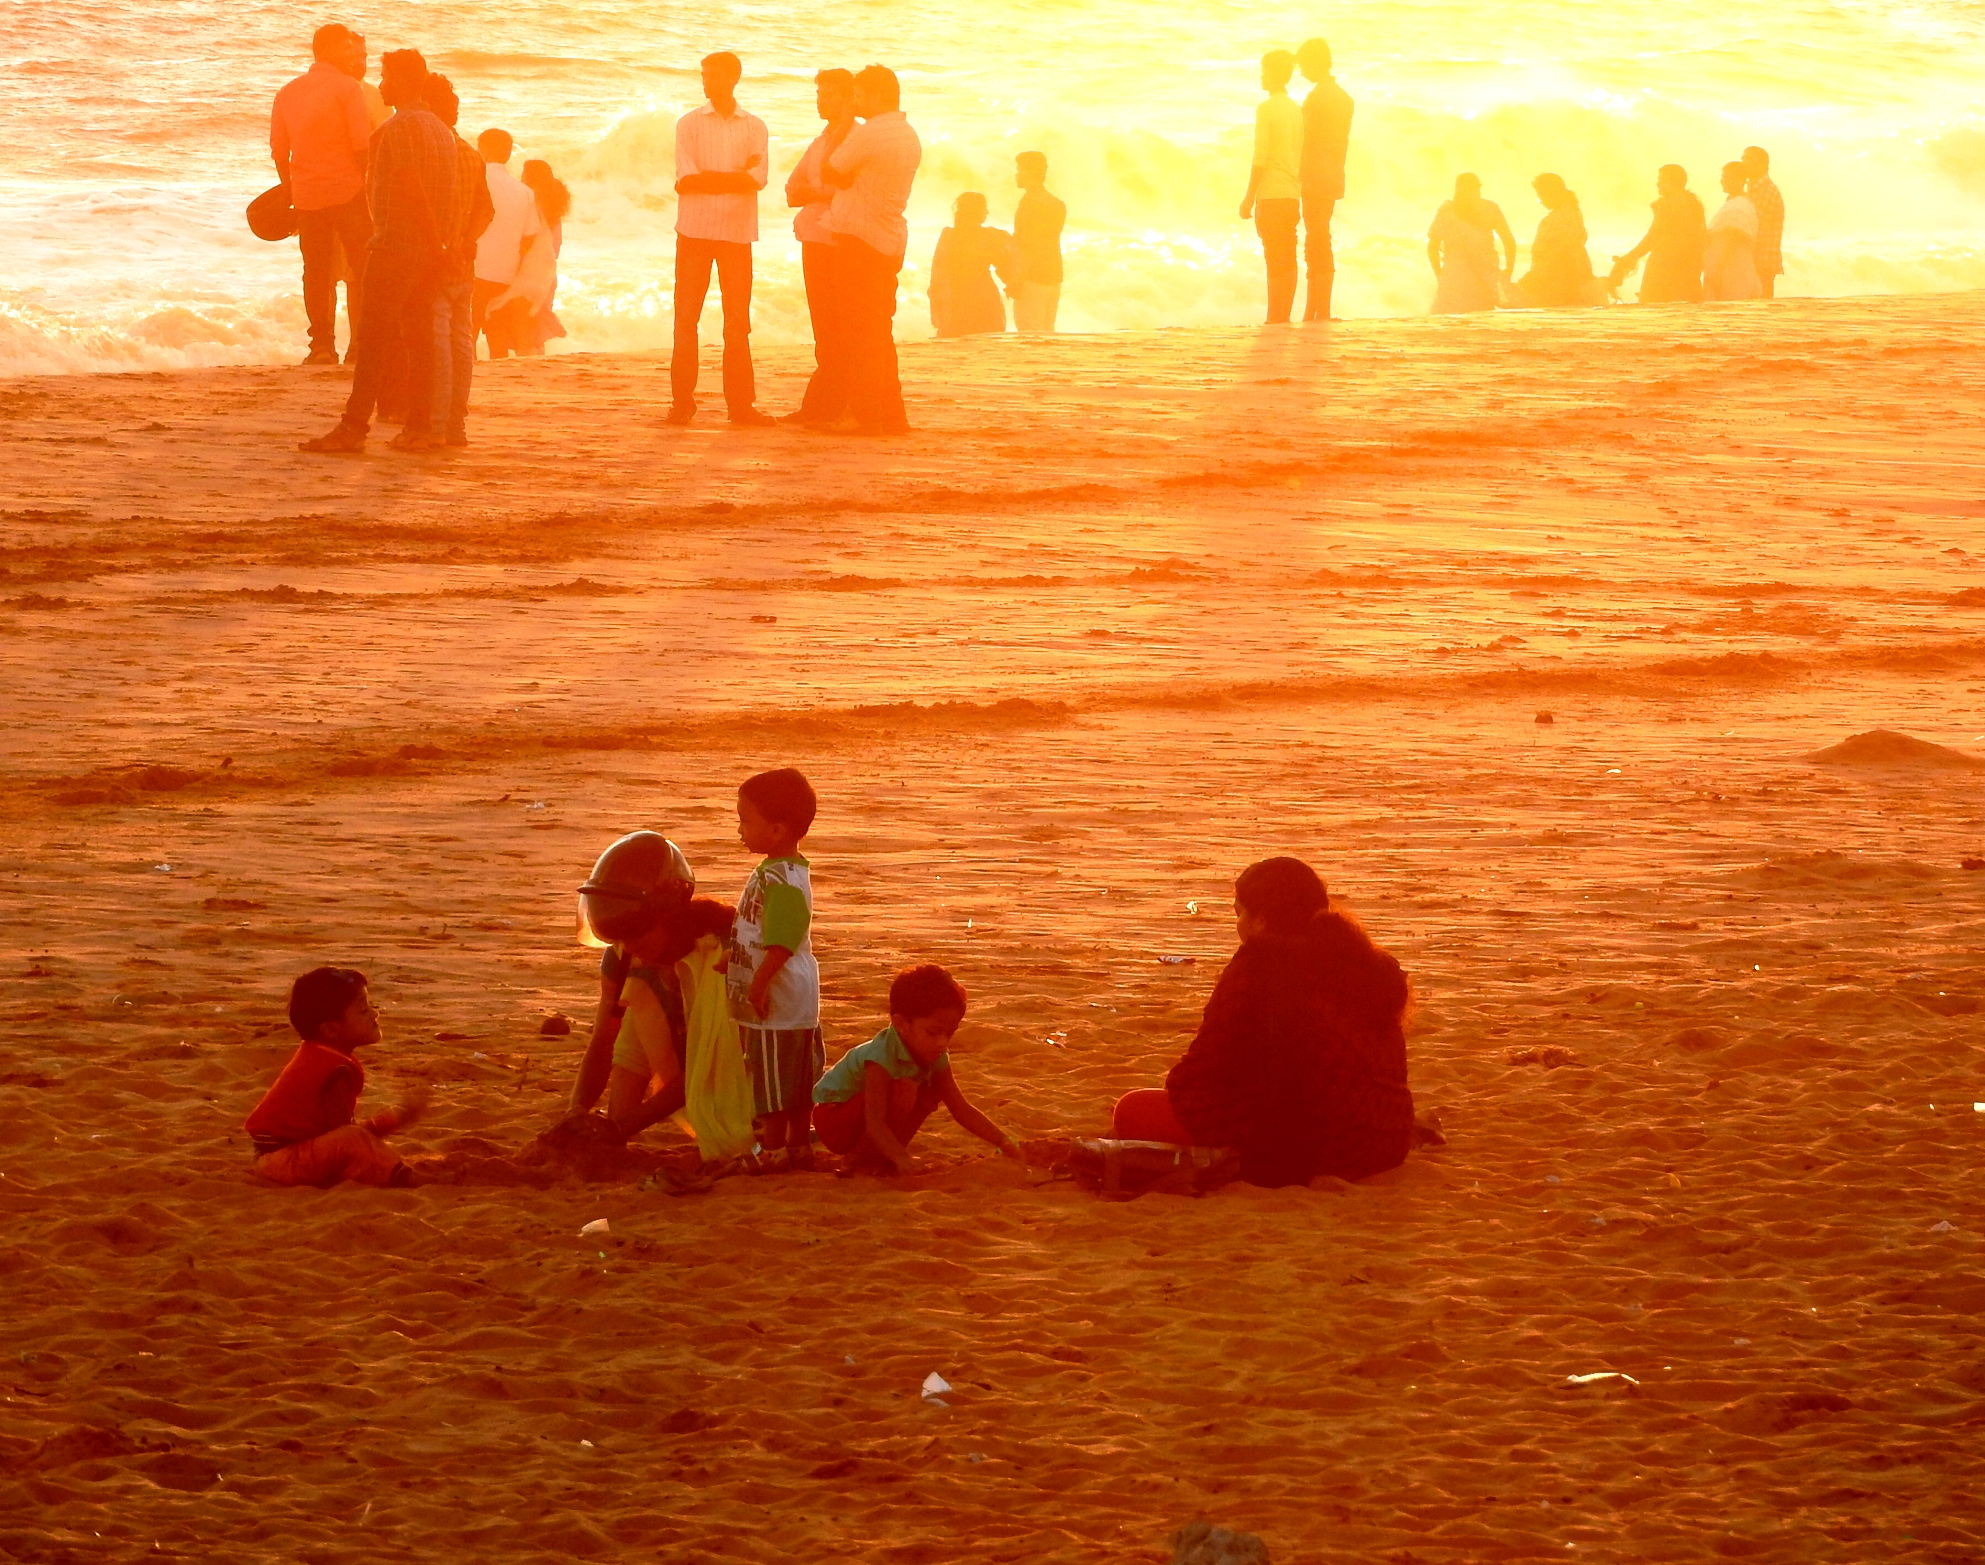 I was always fascinated to have this  family pictures where sunset  light was in a golde yelow hue.I was astonished by the by the frame I got.This photo oppurtunity arrived when we had a visit to a beach during the sunset time.What I want to capture was that the beauty of  sunlights over the beach sand. Camera :  Nikon Coolpix P 610